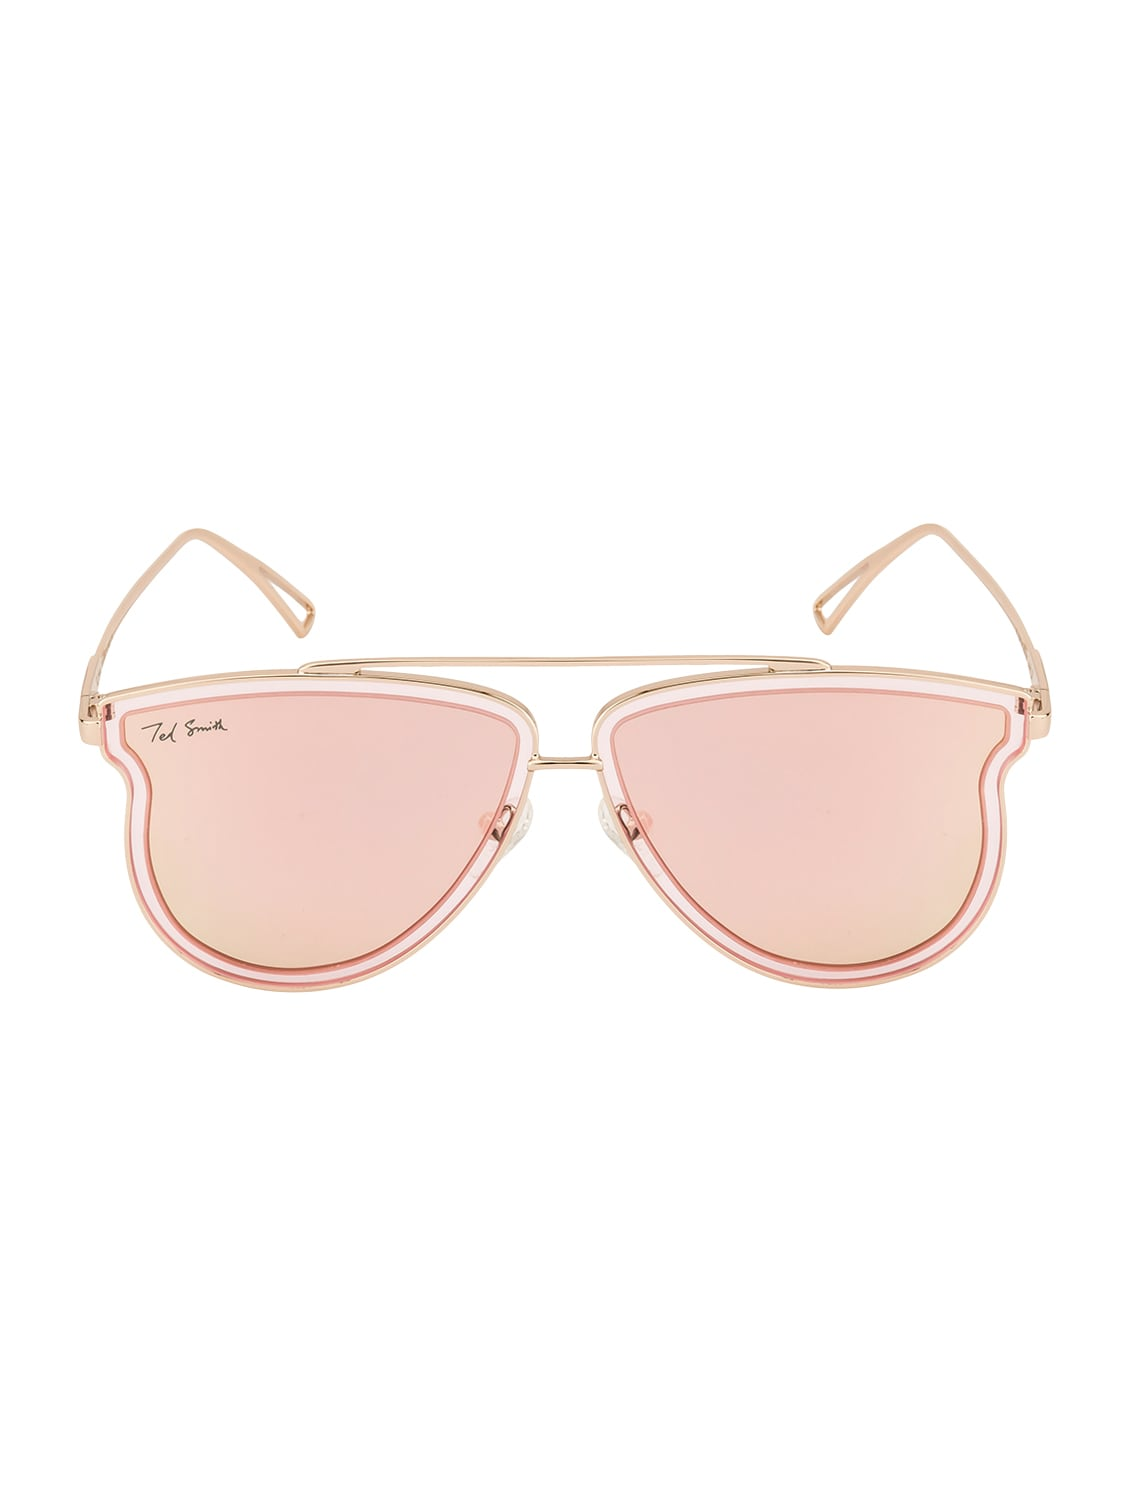 827fc71e87 Buy Ted Smith Unisex Aviator Gold With Pink Polarized Sunglasses by Ted  Smith - Online shopping for Men Sunglasses in India